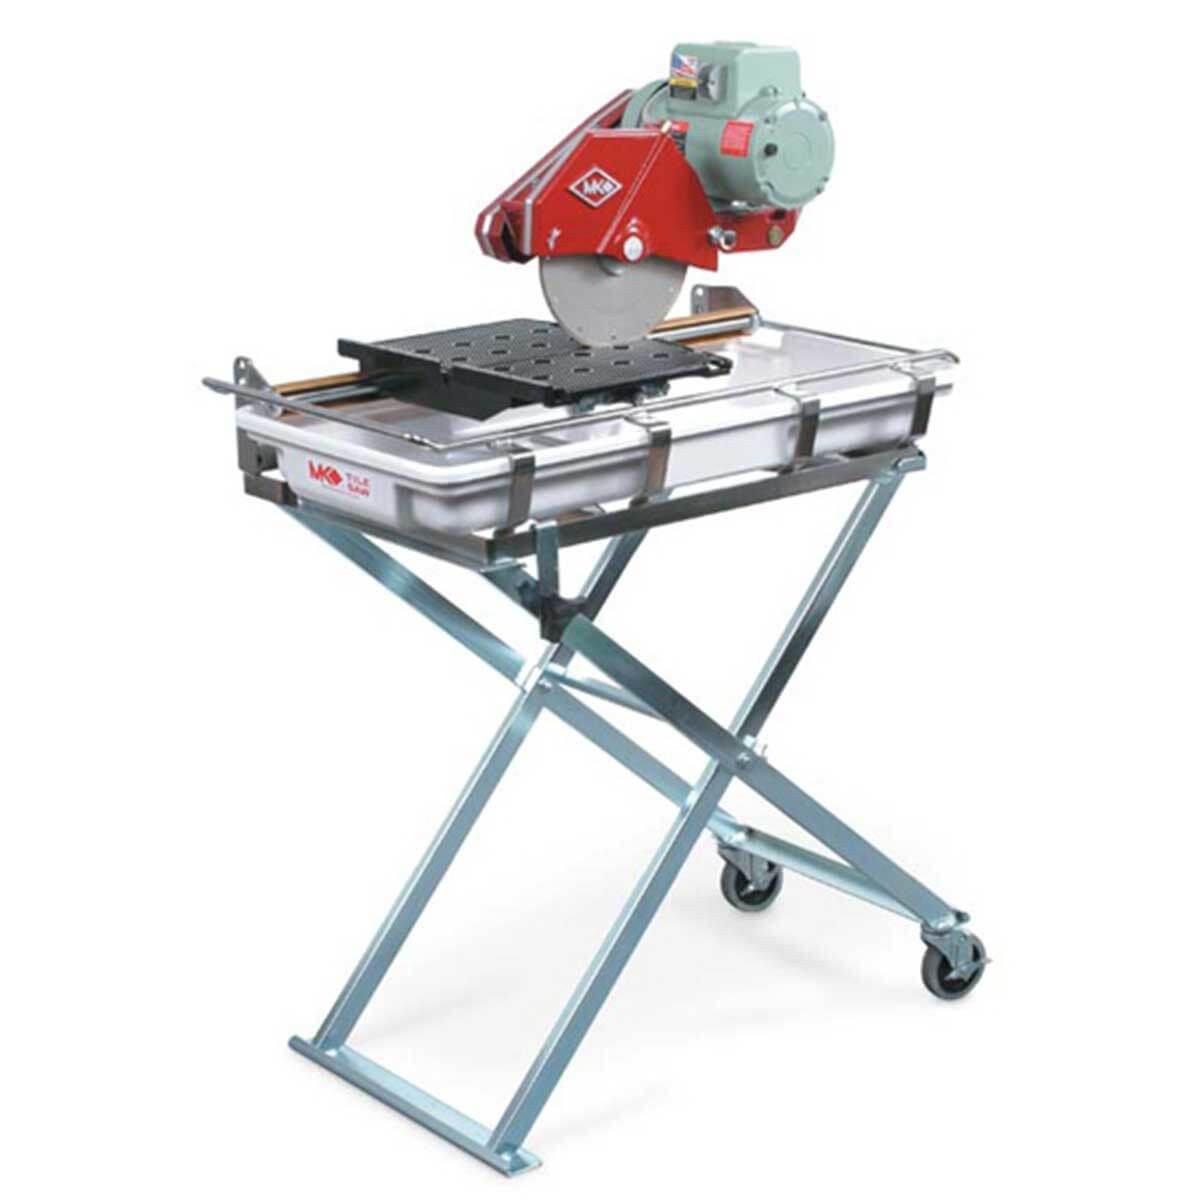 MK Folding Stand With Wheels with Tile Saw